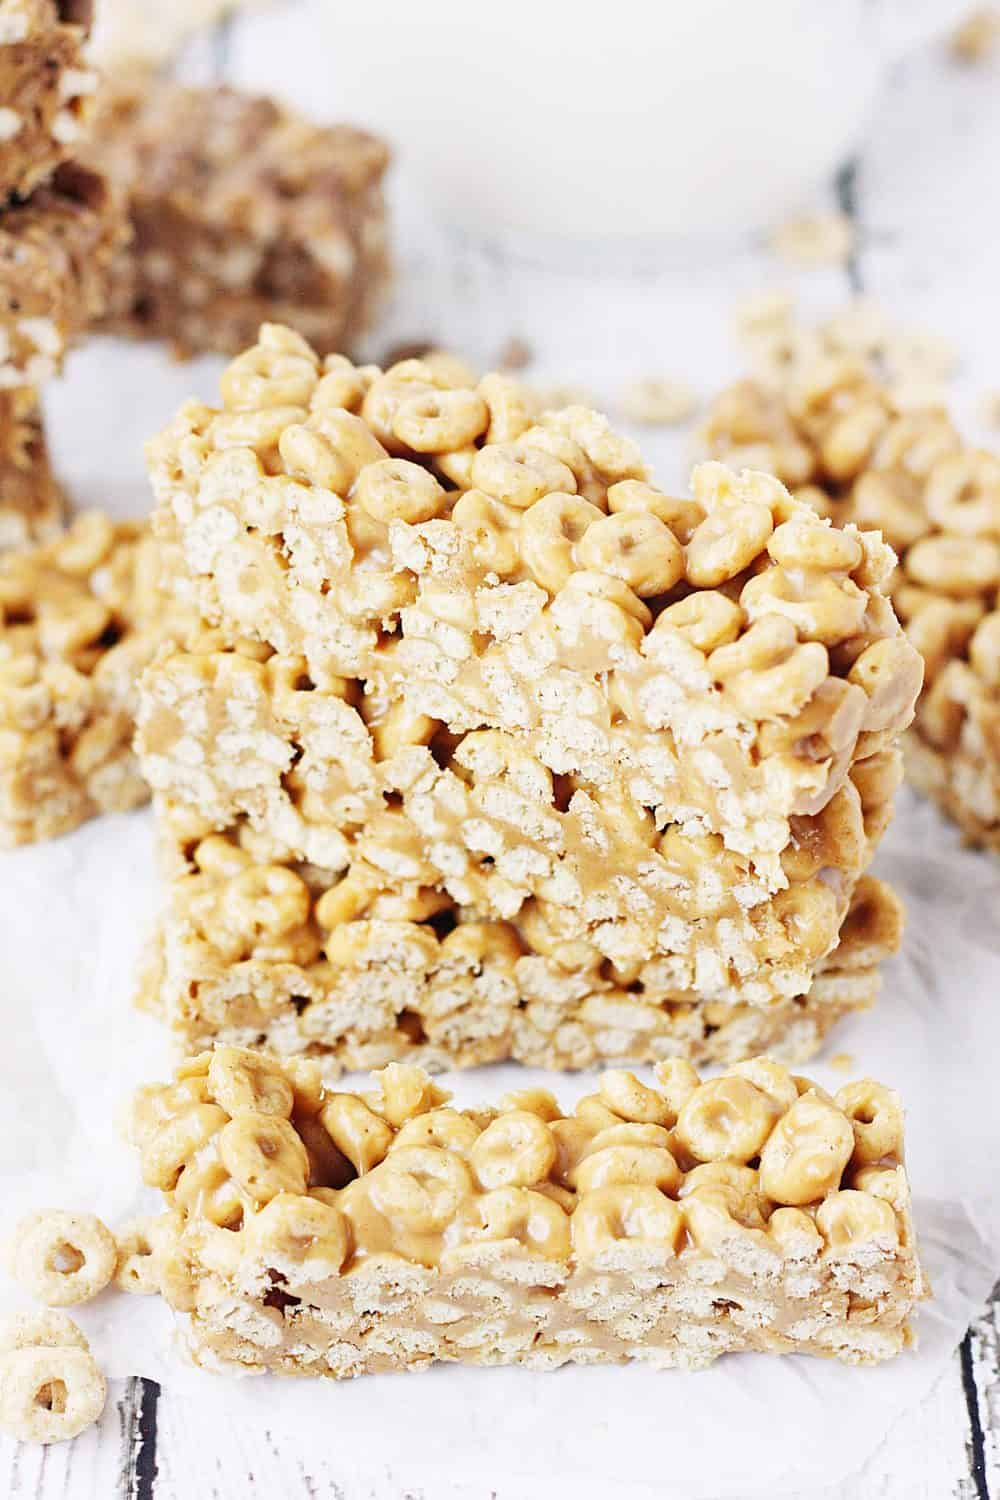 Easy No-Bake Cereal Bars -- Easy no-bake cereal bars take about 5 minutes to make and require only three ingredients: cereal, peanut butter, and honey. Perfect as an on-the-go breakfast or afternoon snack! | #recipes #breakfast